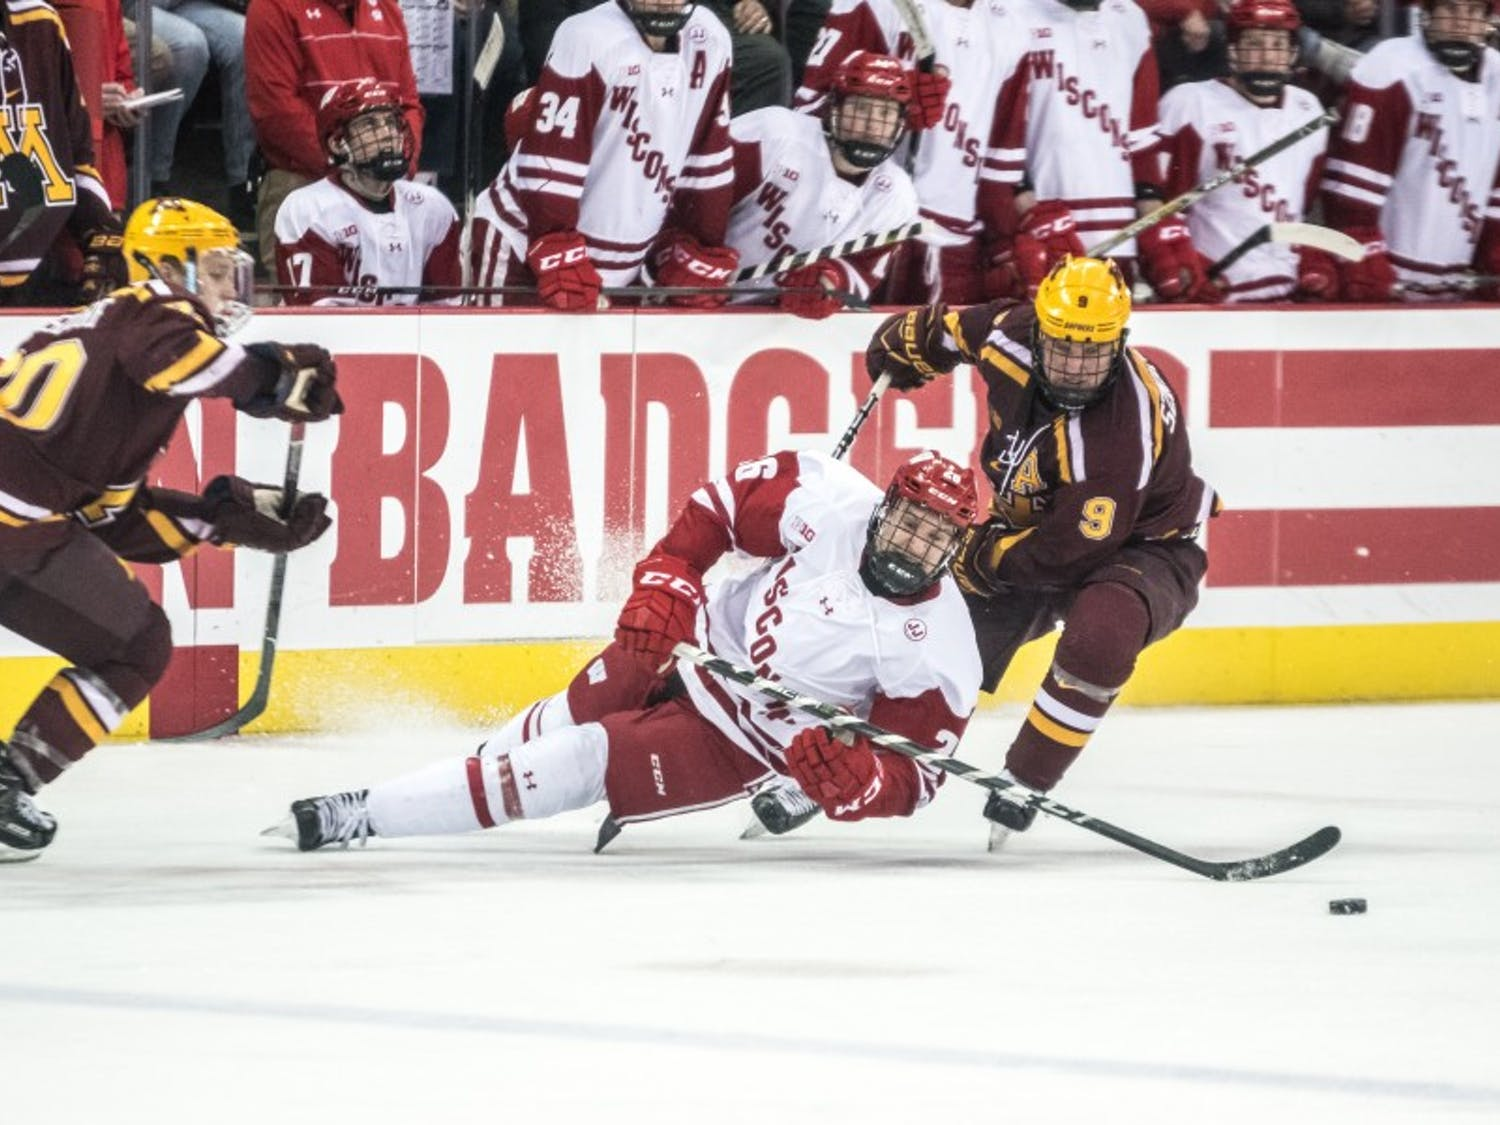 Wisconsin gave up three goals in 74 seconds in a stretch that cost them a game in which they otherwise performed well.